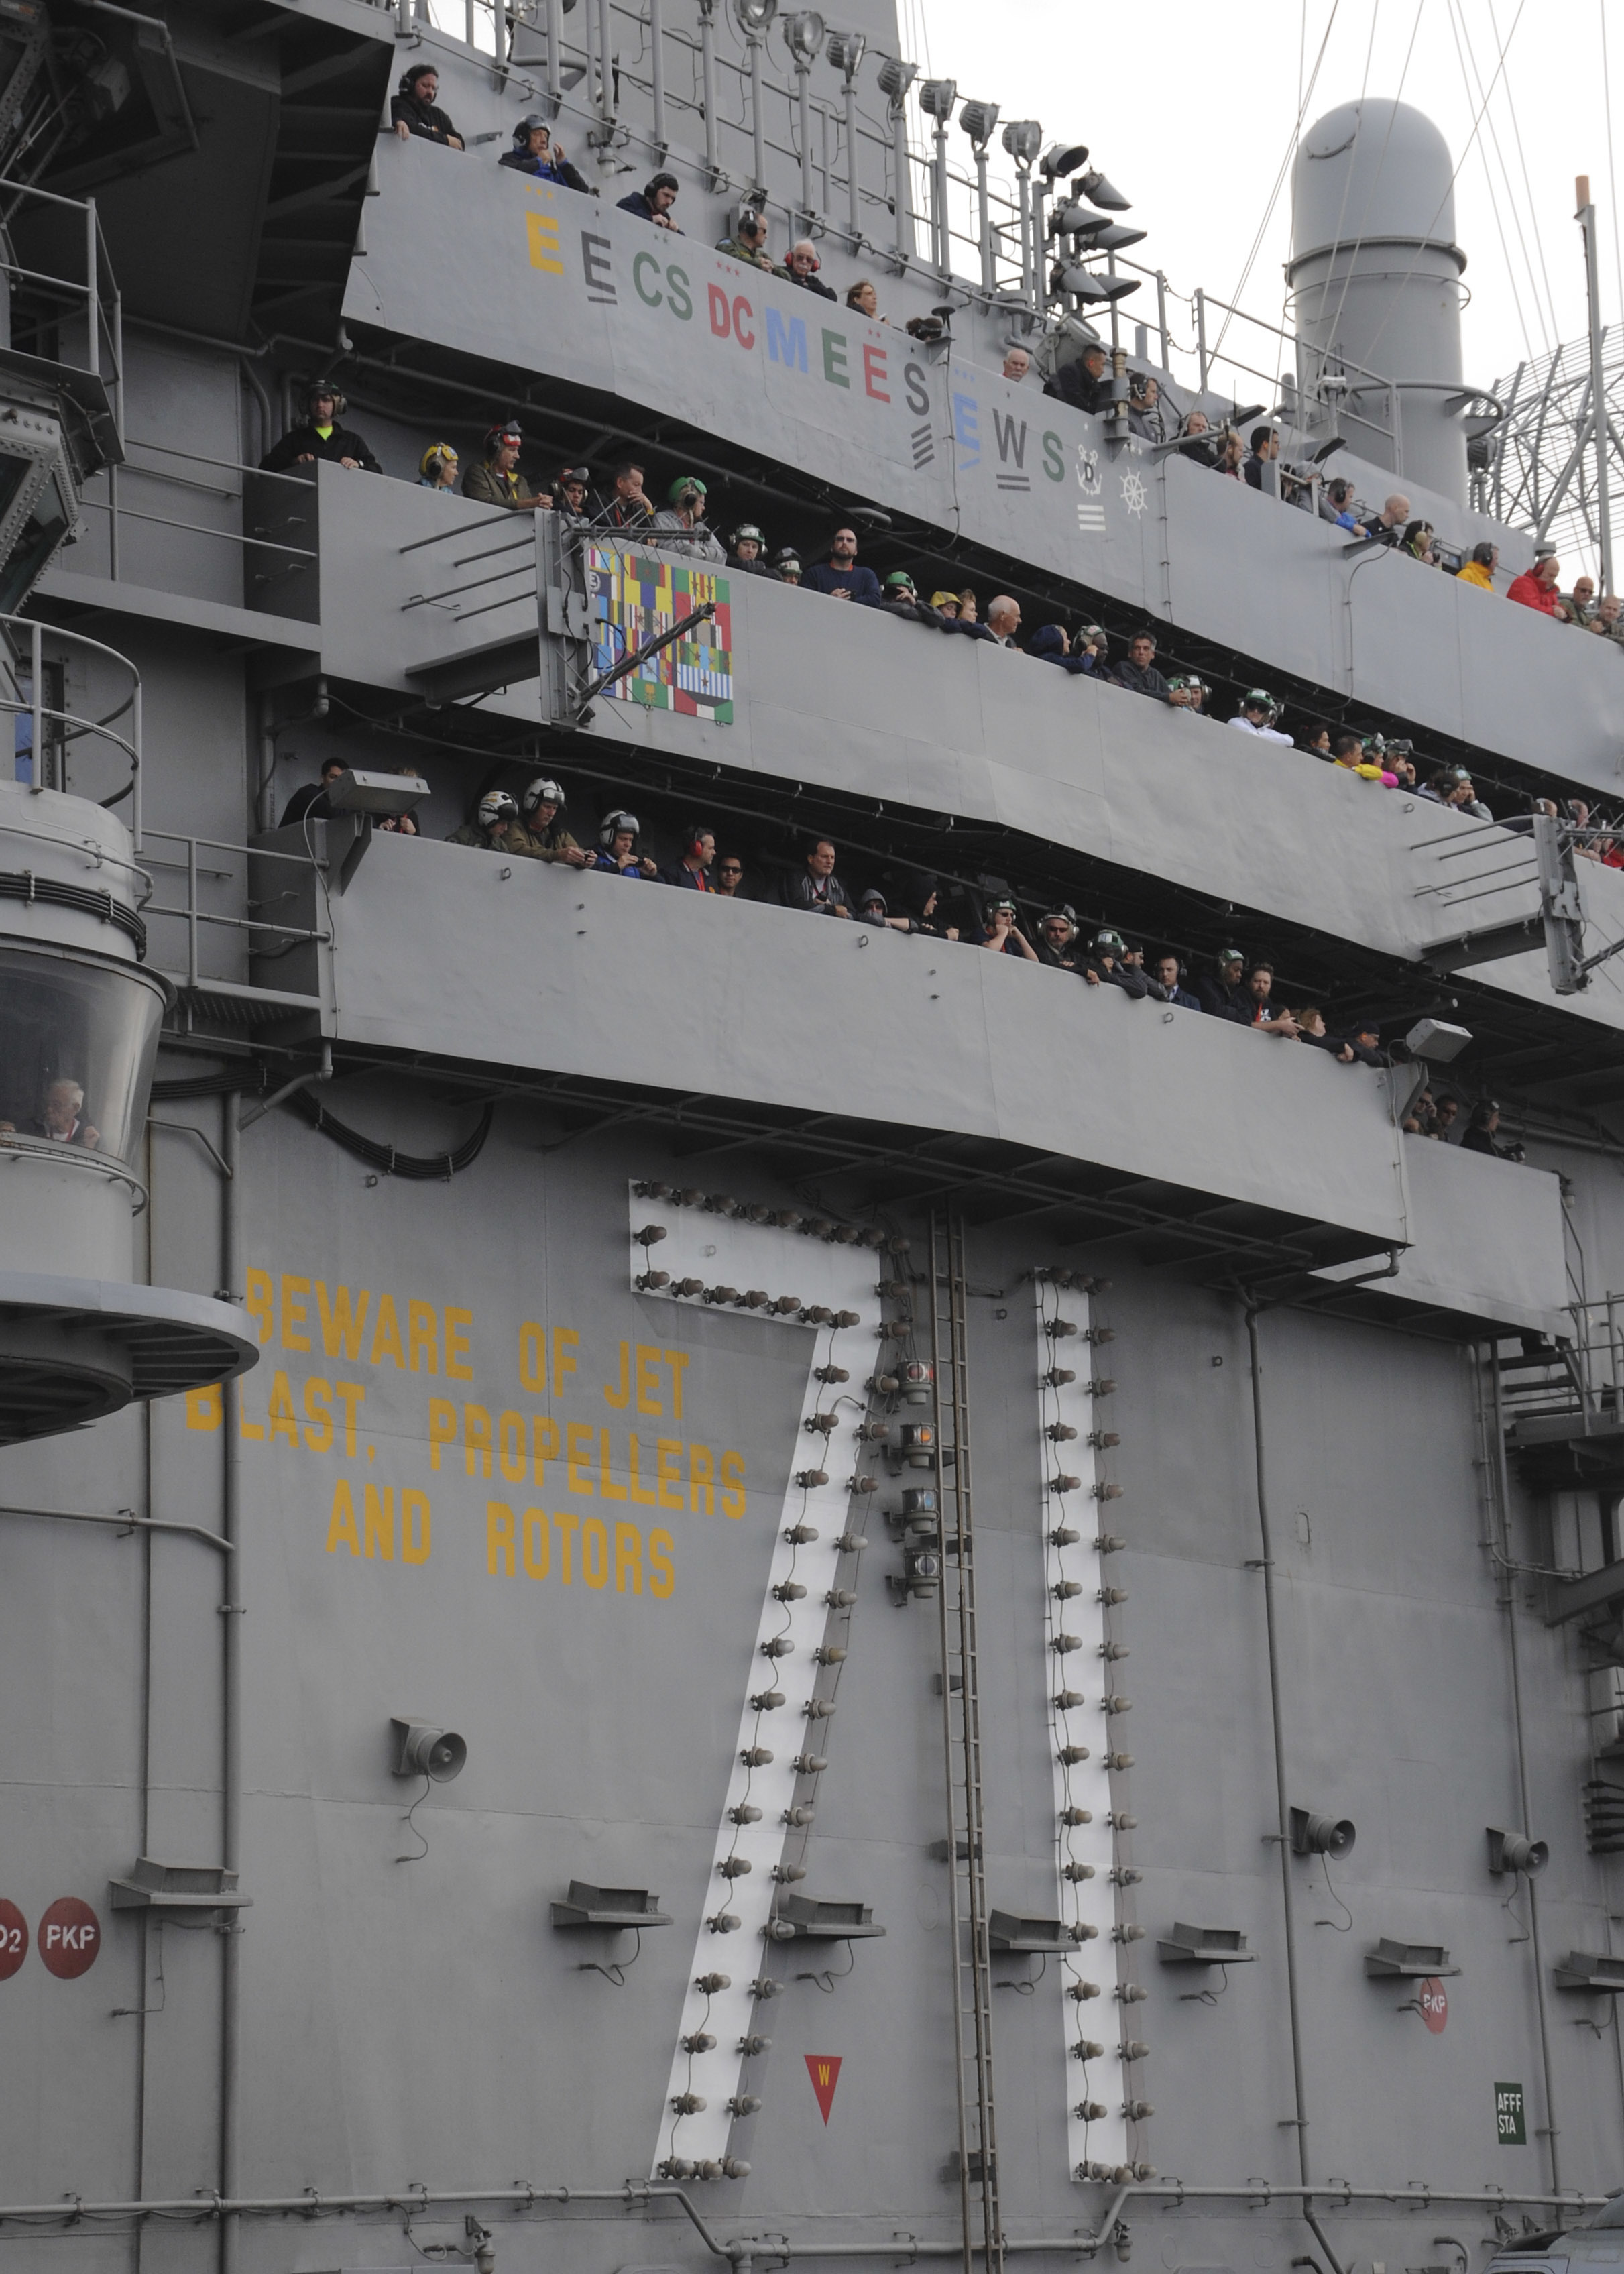 151121-N-NV908-665 PACIFIC OCEAN (Nov. 21, 2015) – Sailors, Marines and guests observe the final jet launches of deployment from the island of the aircraft carrier USS Theodore Roosevelt (CVN 71. Tiger cruises allow crew members to bring family and friends aboard to experience shipboard life. Theodore Roosevelt is operating in the U.S. 3rd Fleet area of operations as part of a worldwide deployment en route to its new homeport in San Diego to complete a three-carrier homeport shift. (U.S. Navy Photo by Mass Communication Specialist Seaman Chad M. Trudeau/Released)